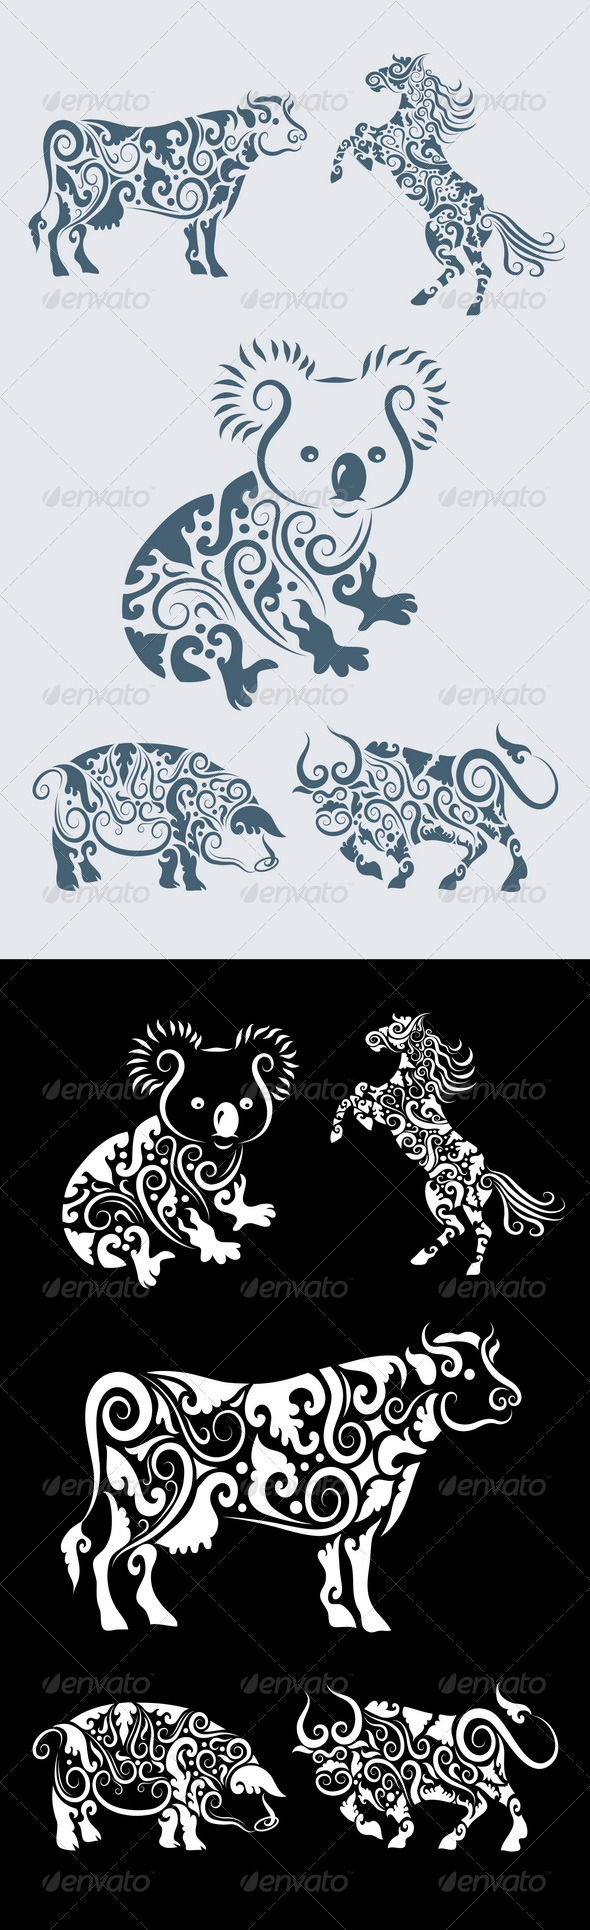 Koala ornament and friends (5 animal ornaments) - Flourishes / Swirls Decorative